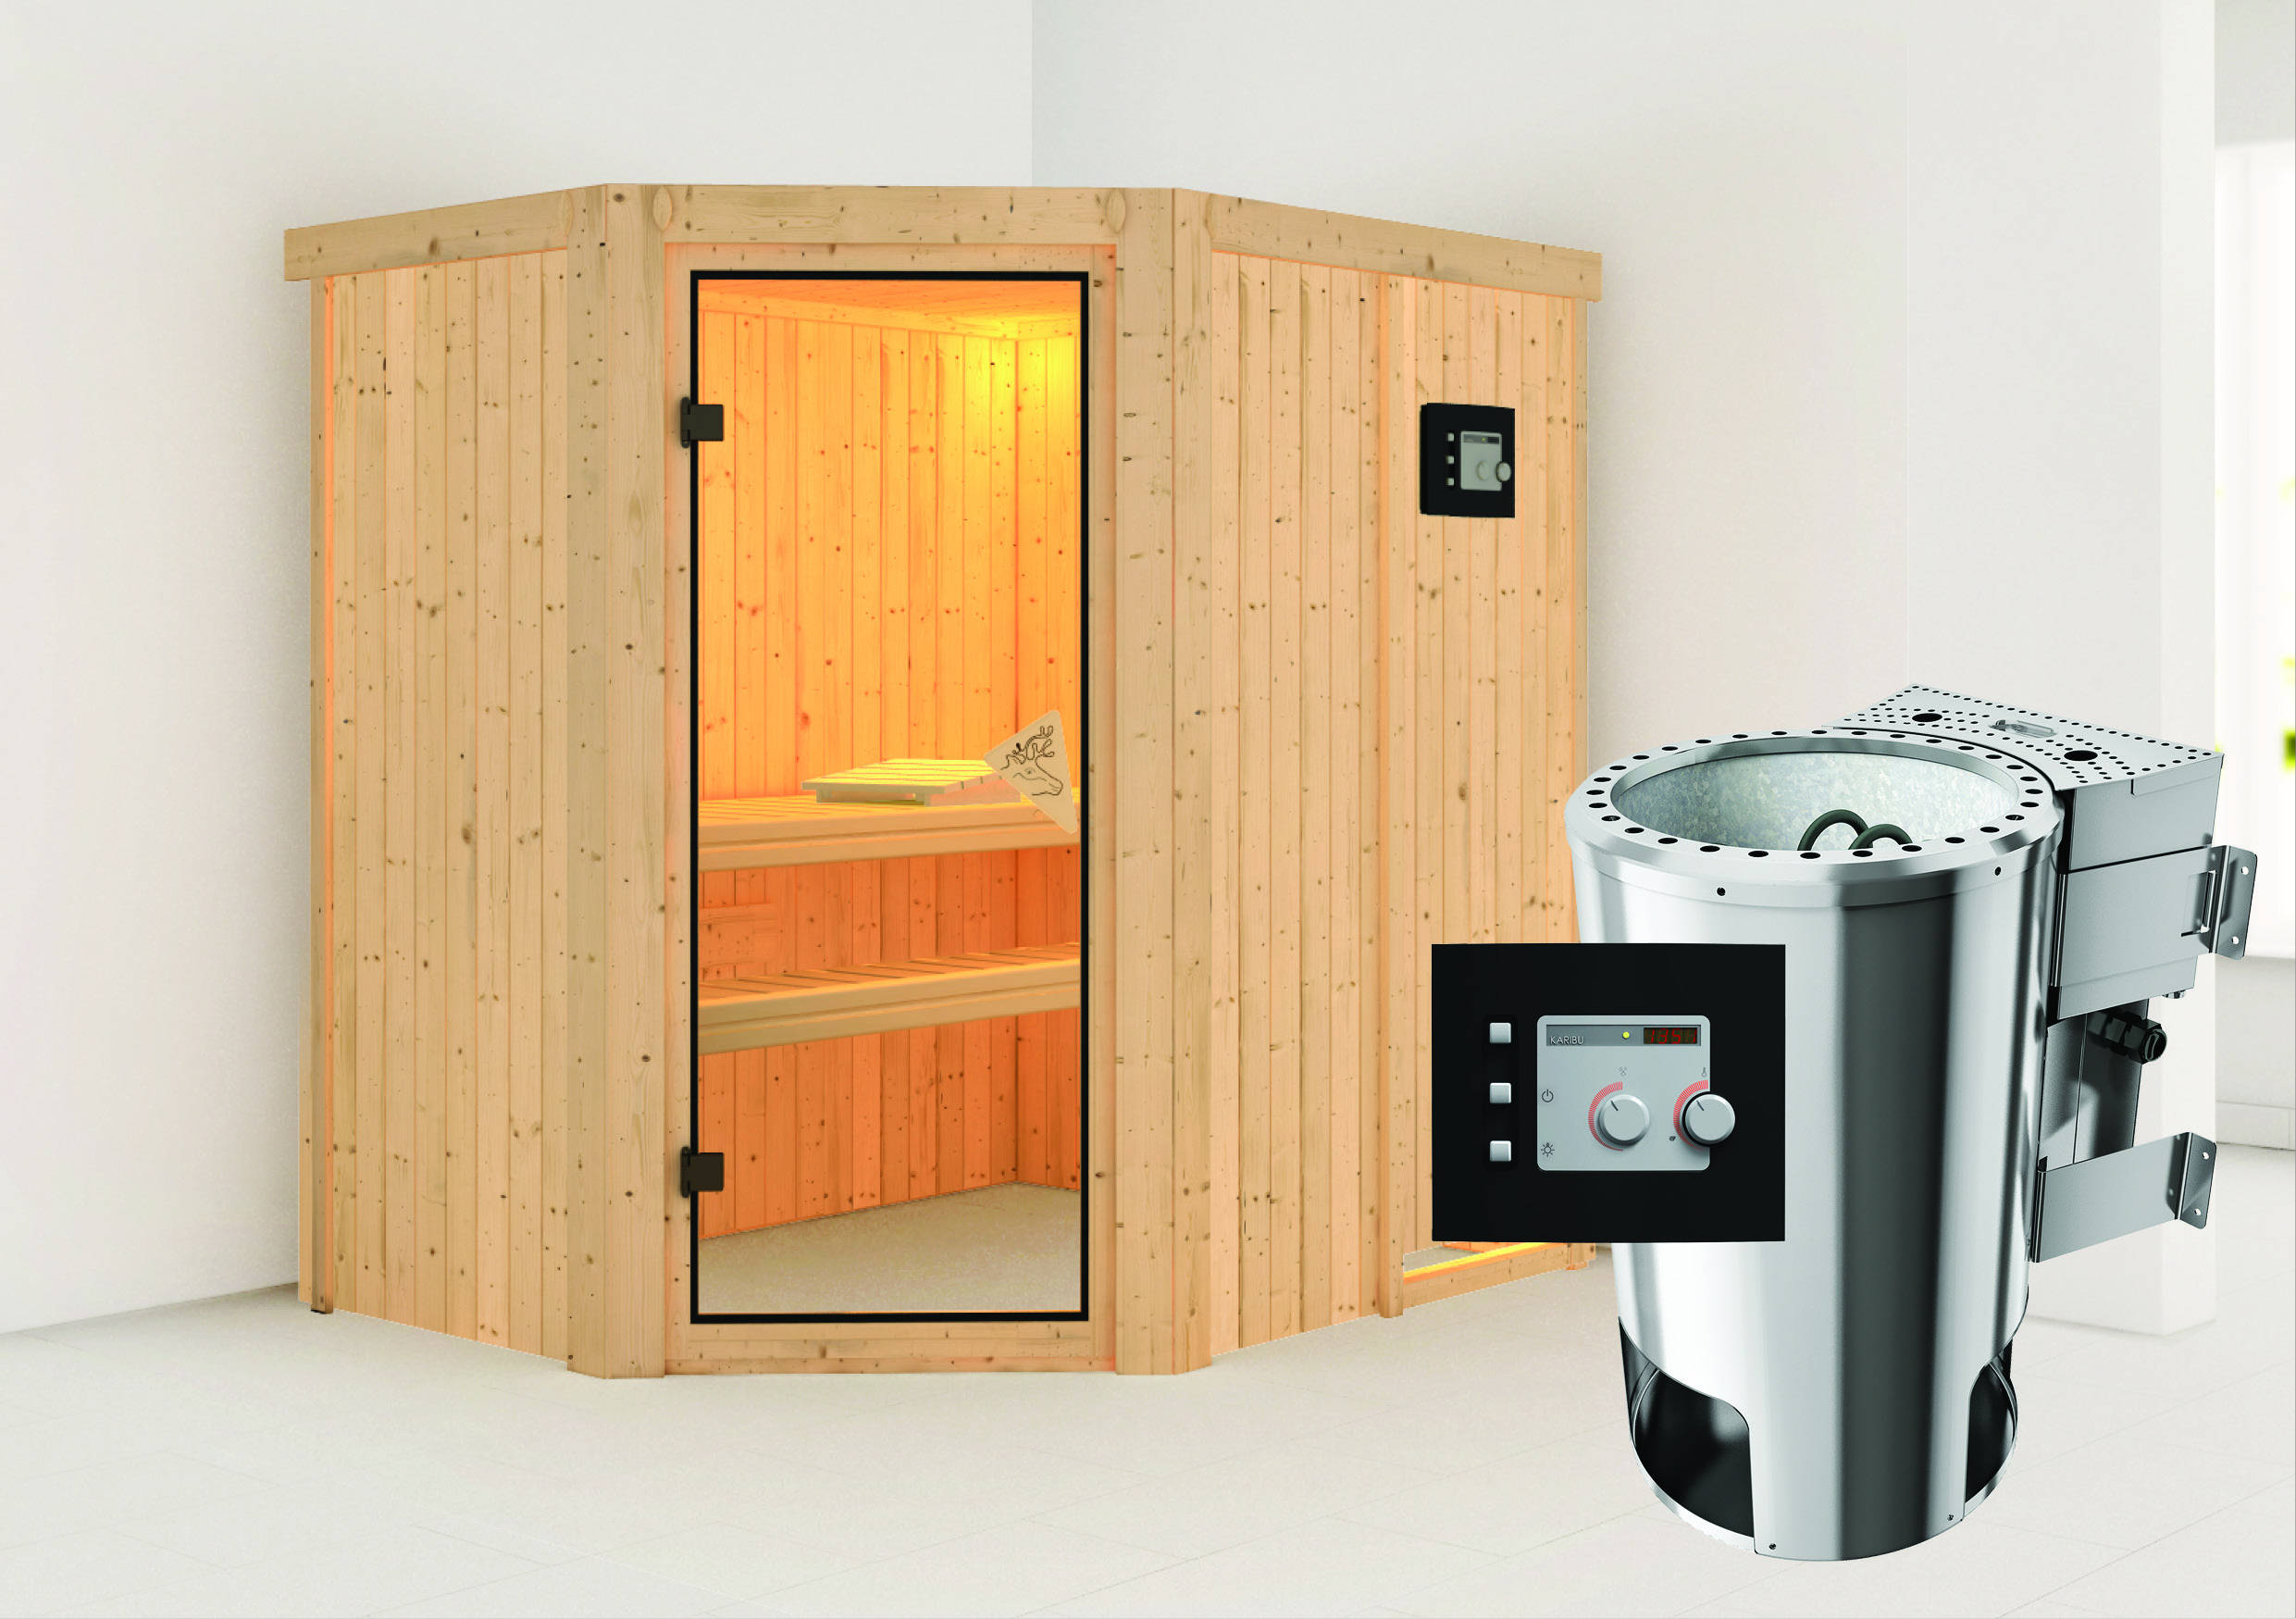 karibu sauna saja 230 volt mit bio saunaofen 3 6kw extern. Black Bedroom Furniture Sets. Home Design Ideas